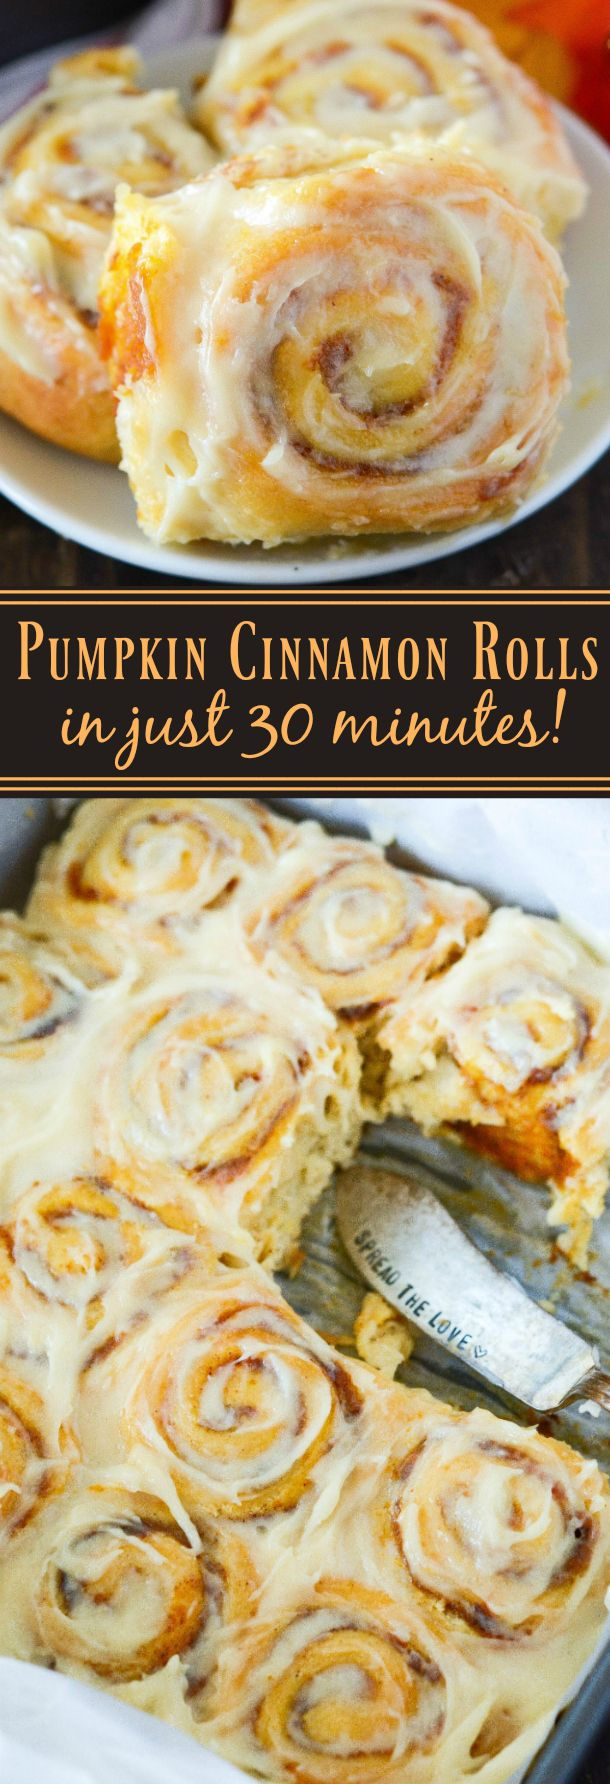 Pumpkin Cinnamon Rolls made in just 30 minutes! Sweet pumpkin cinnamon rolls are made quickly with crescent dough and then covered in a delicious cream cheese frosting!: